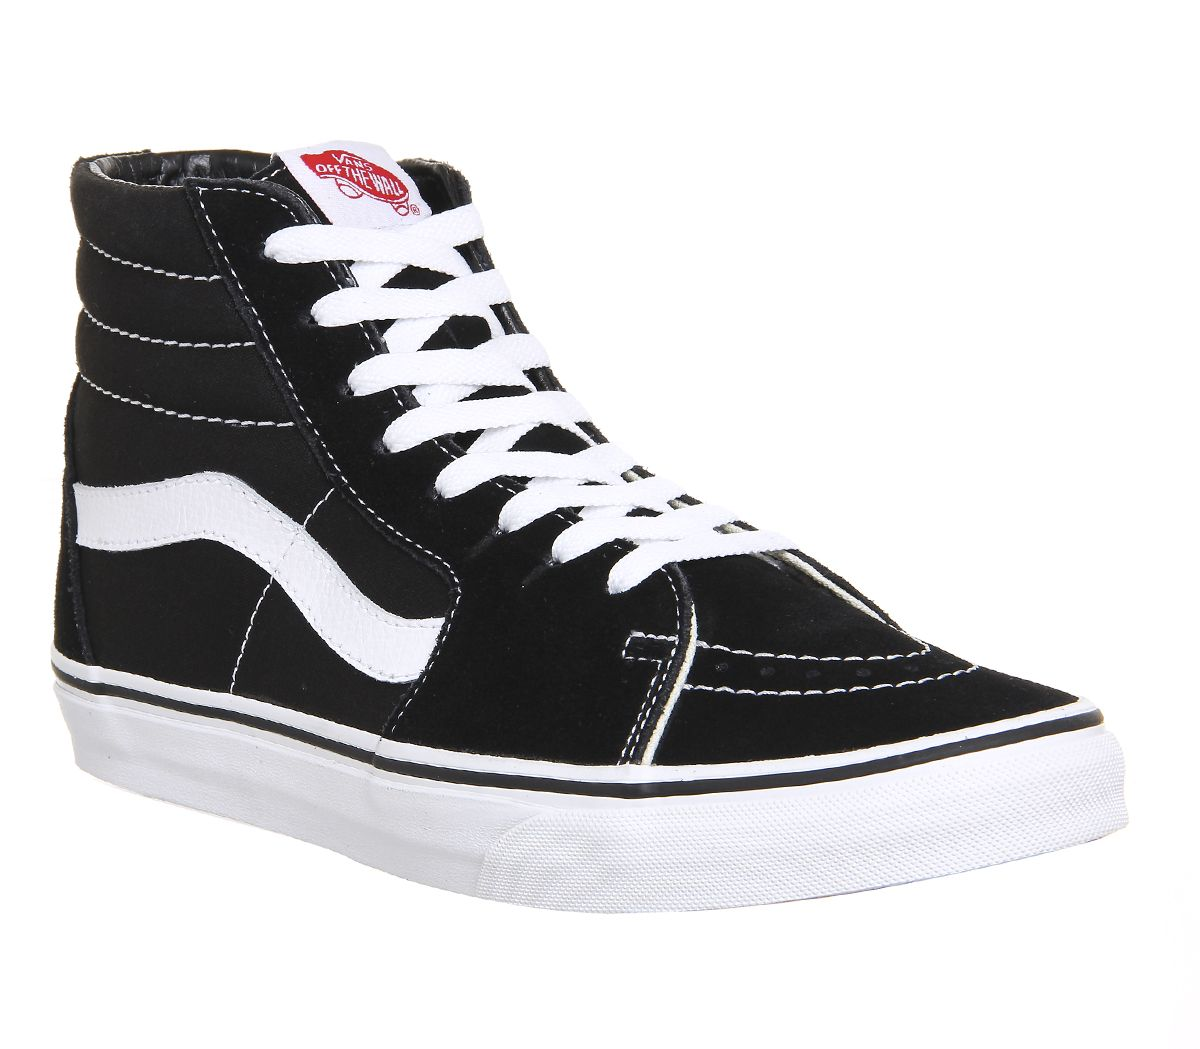 23f7c3099784 Vans Sk8 Hi Black White Canvas - Office Girl